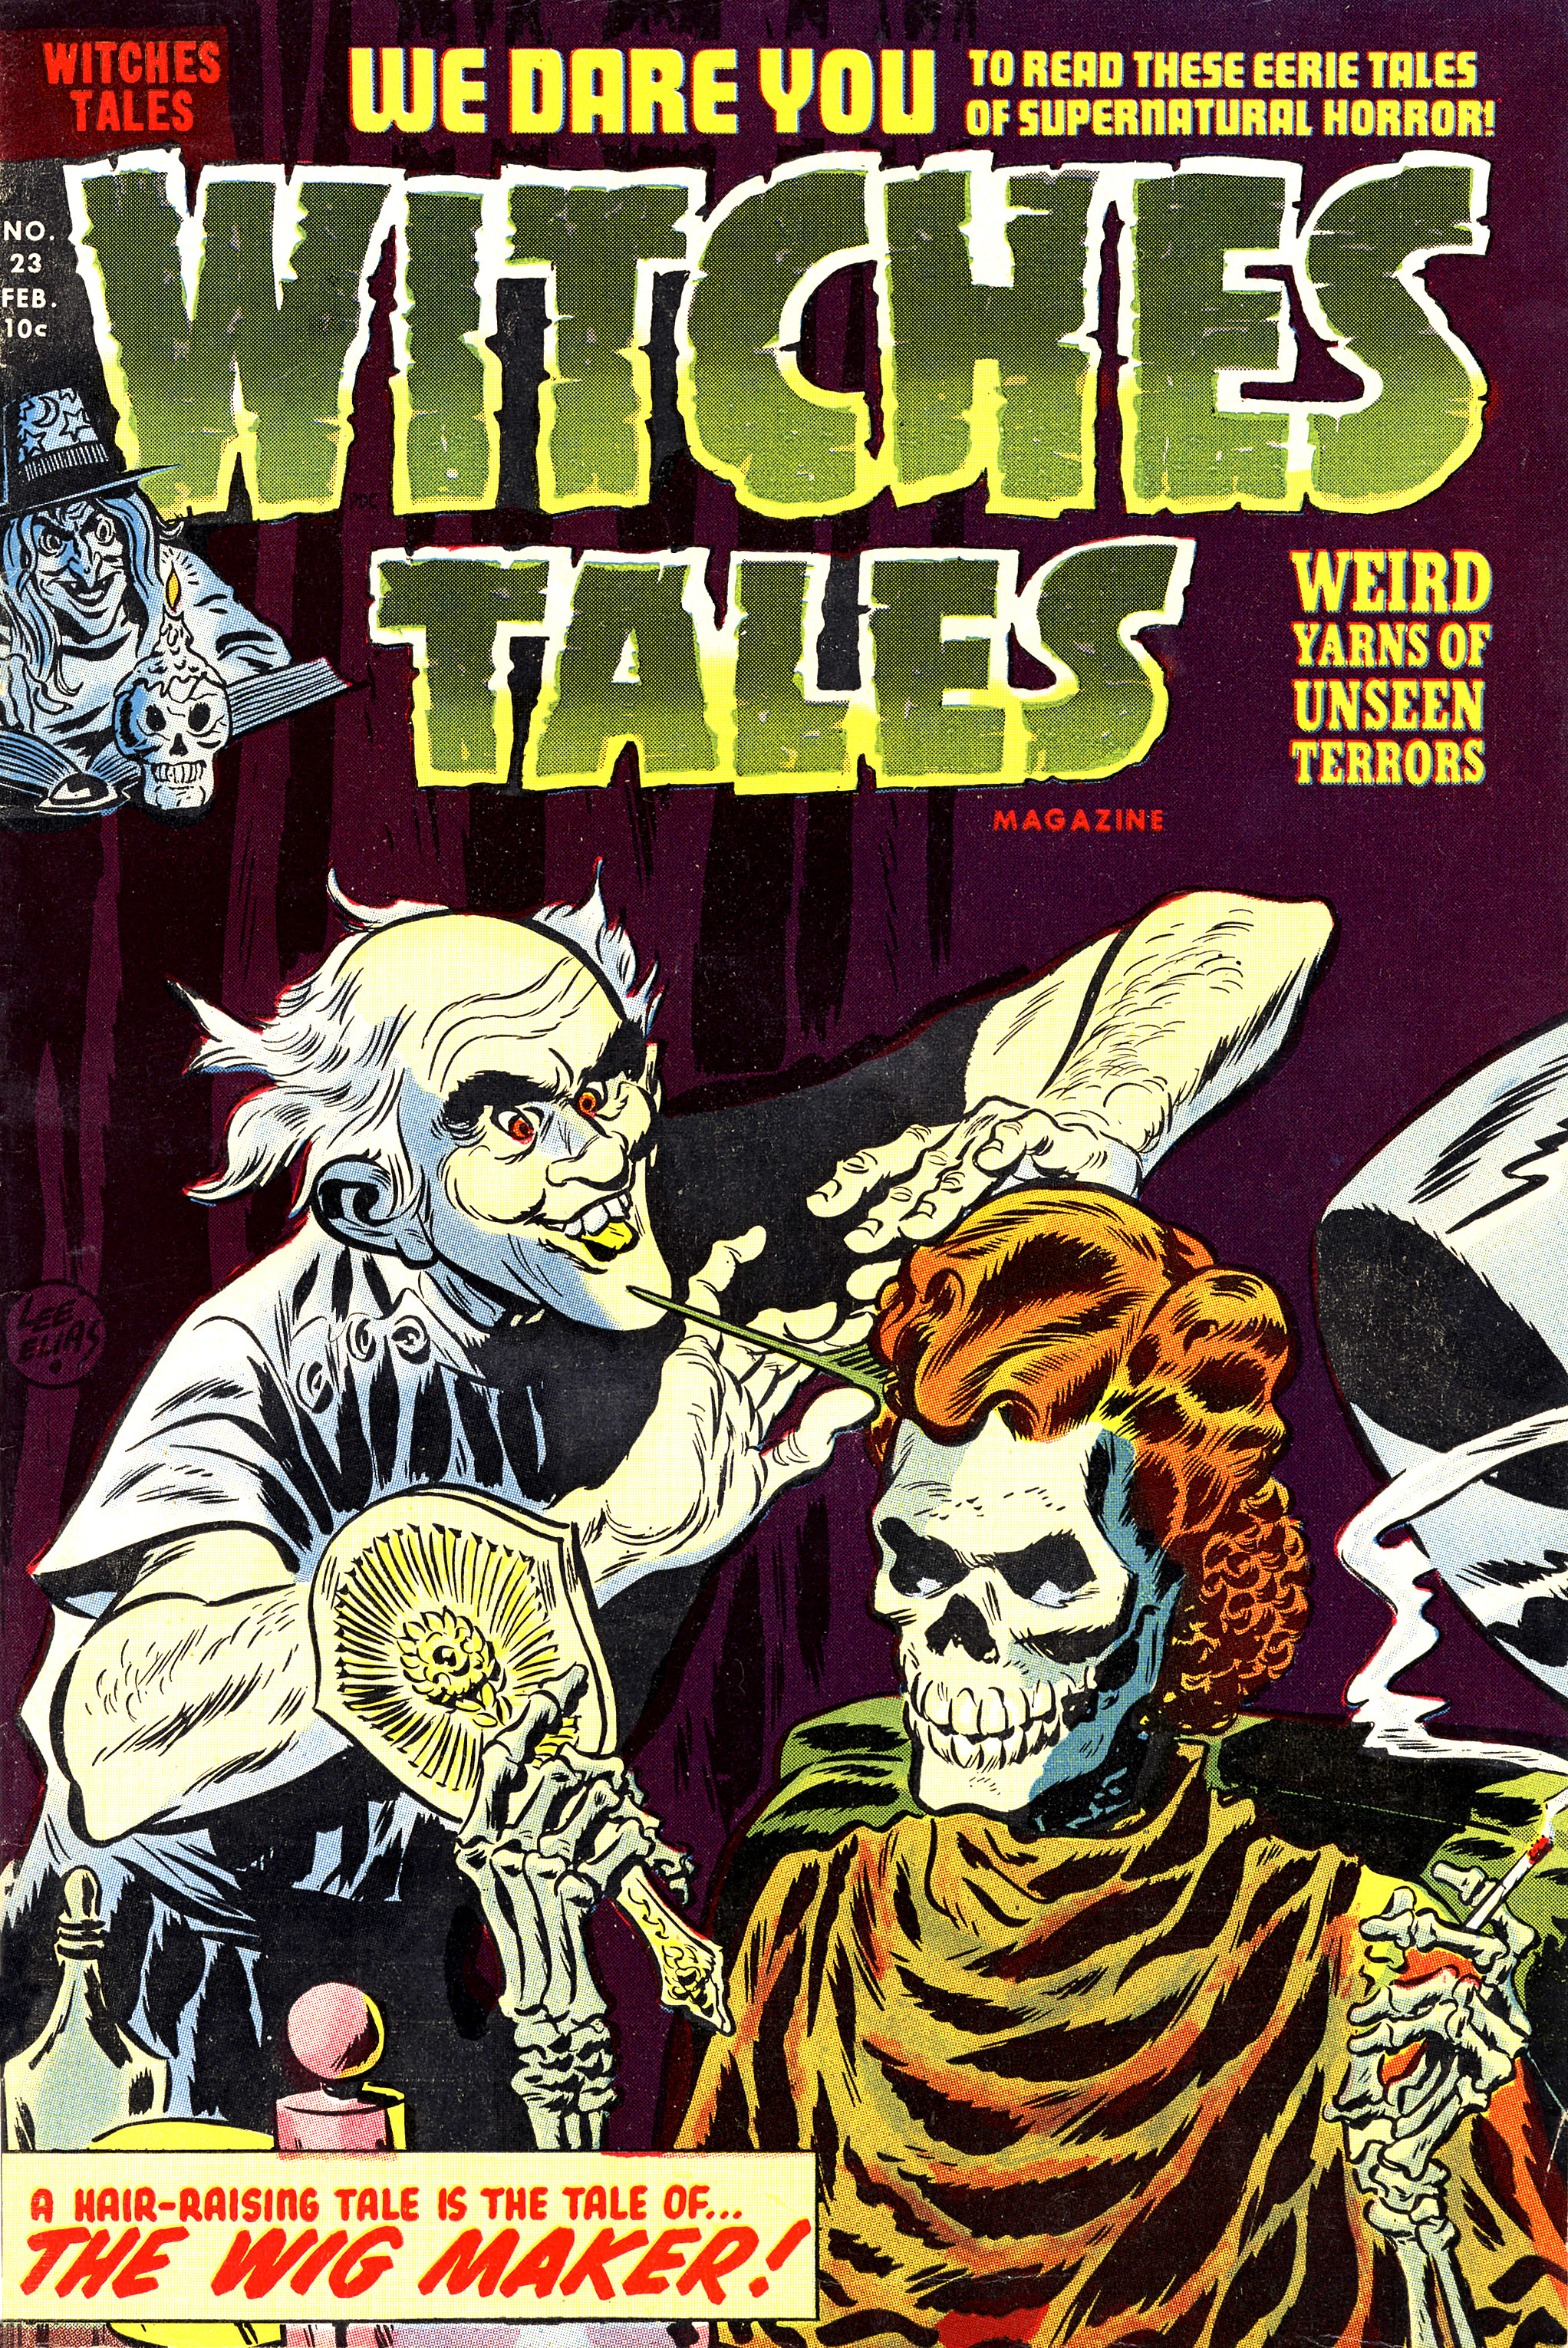 Witches Tales #23, Lee Elias Cover (Harvey, 1954)